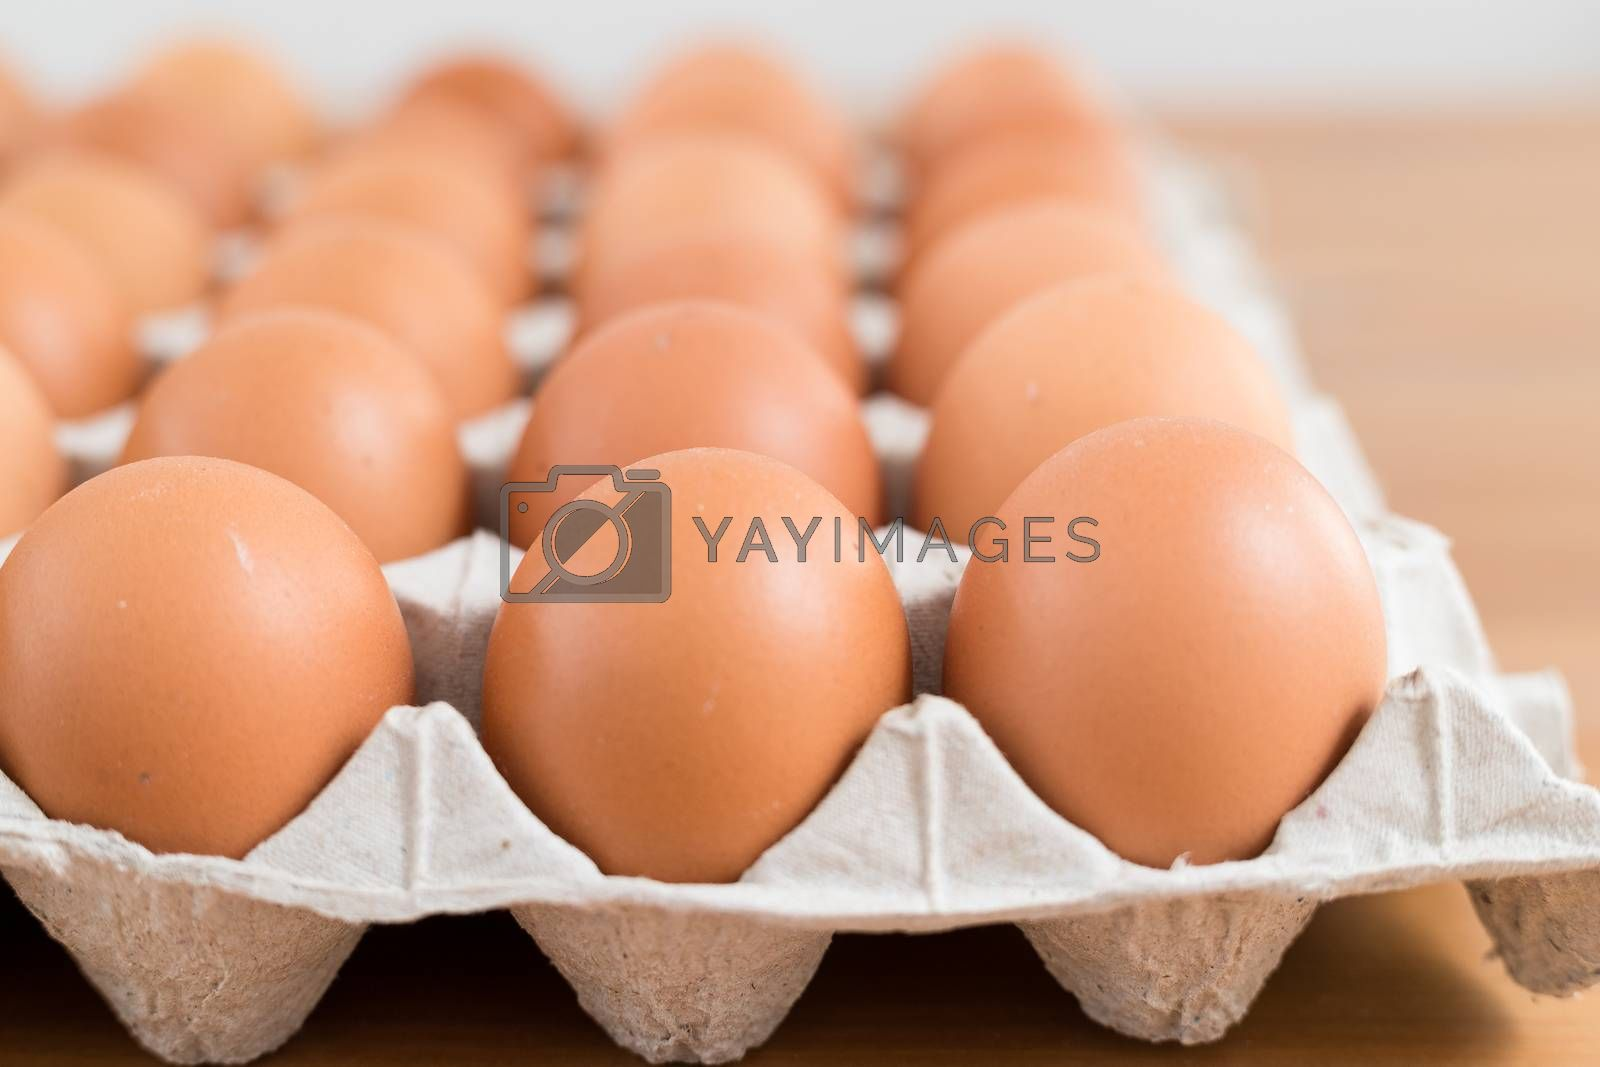 Royalty free image of Egg in pack by leungchopan